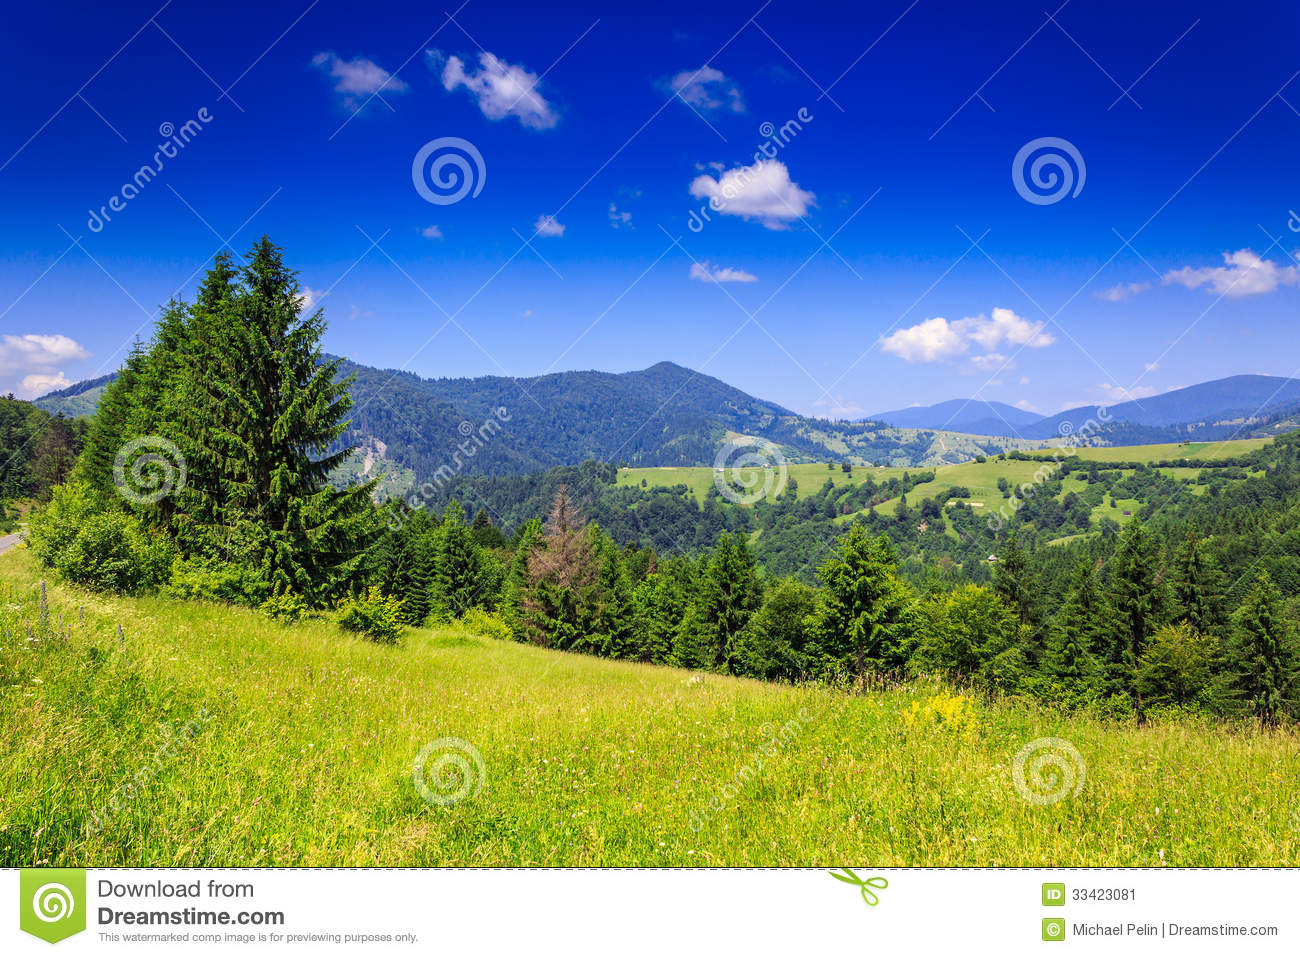 Download Mountain View From Green Meadow In Summer Stock Image - Image of nature, environment: 33423081